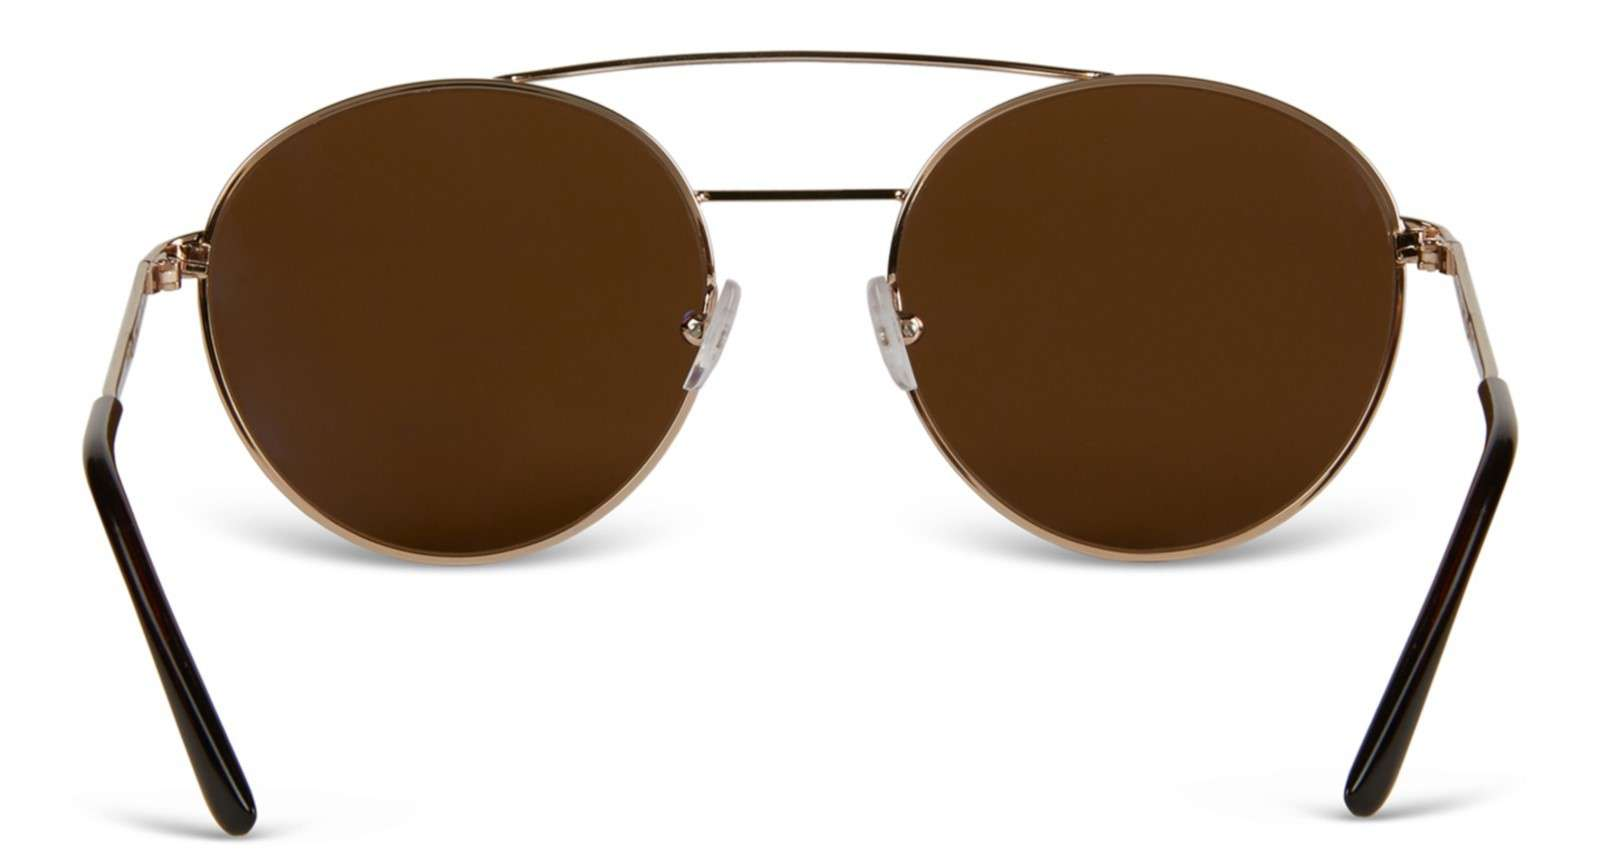 SanBabila sunglasses by Boggi Milano - brown - rear view